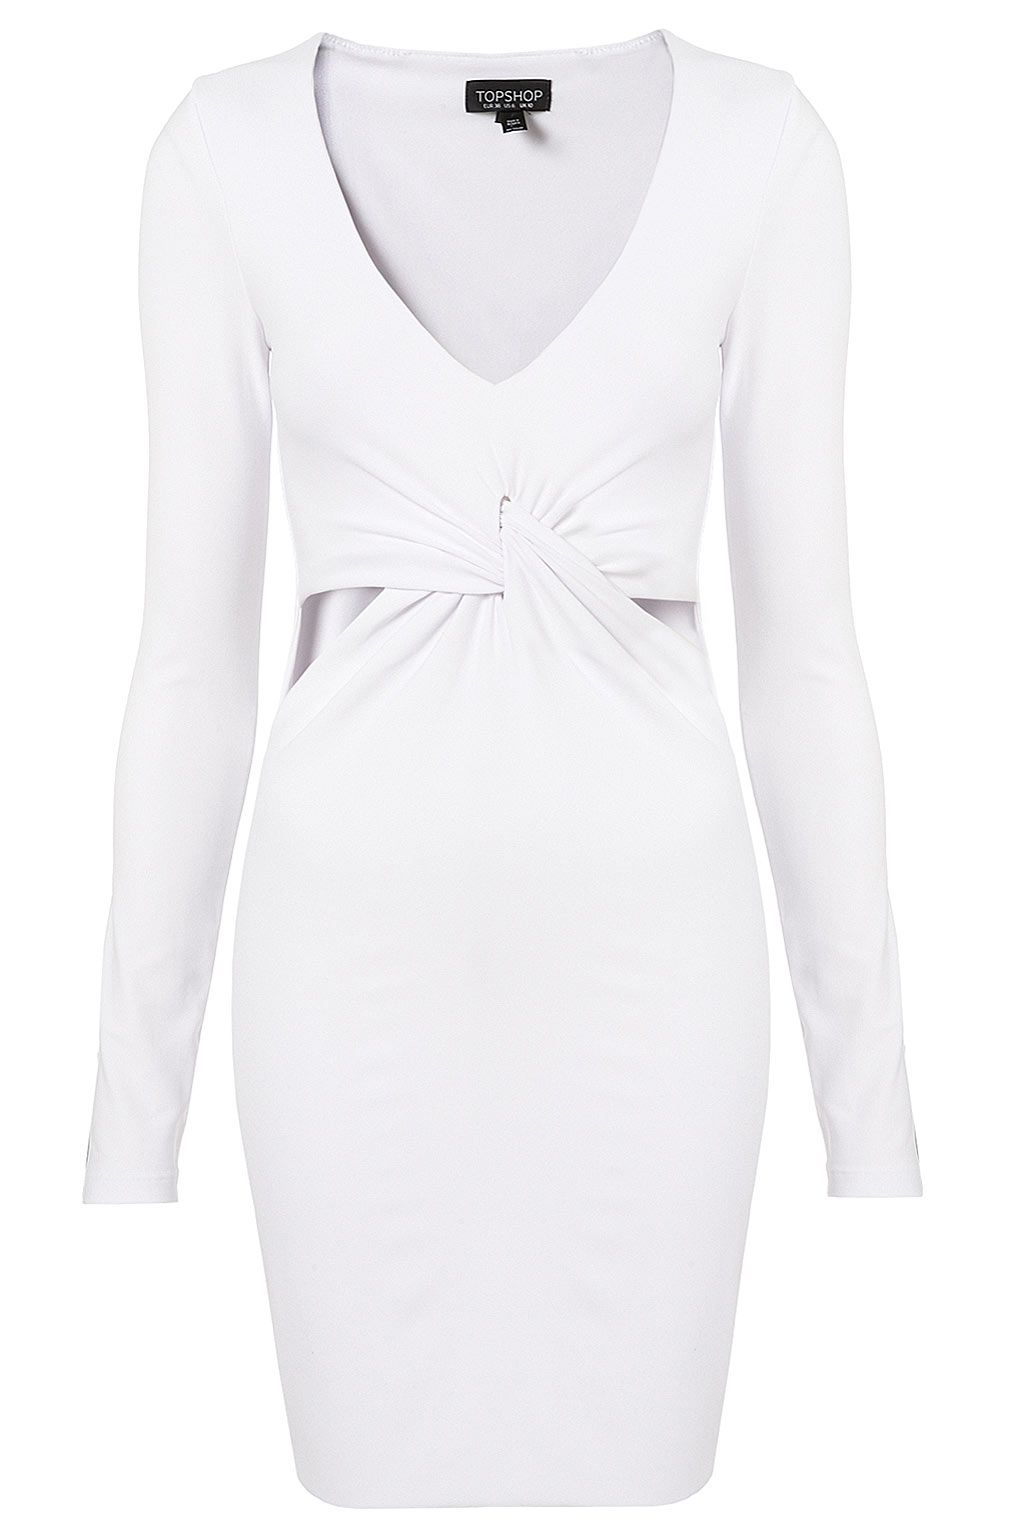 White long sleeve dress recent purchases pinterest body